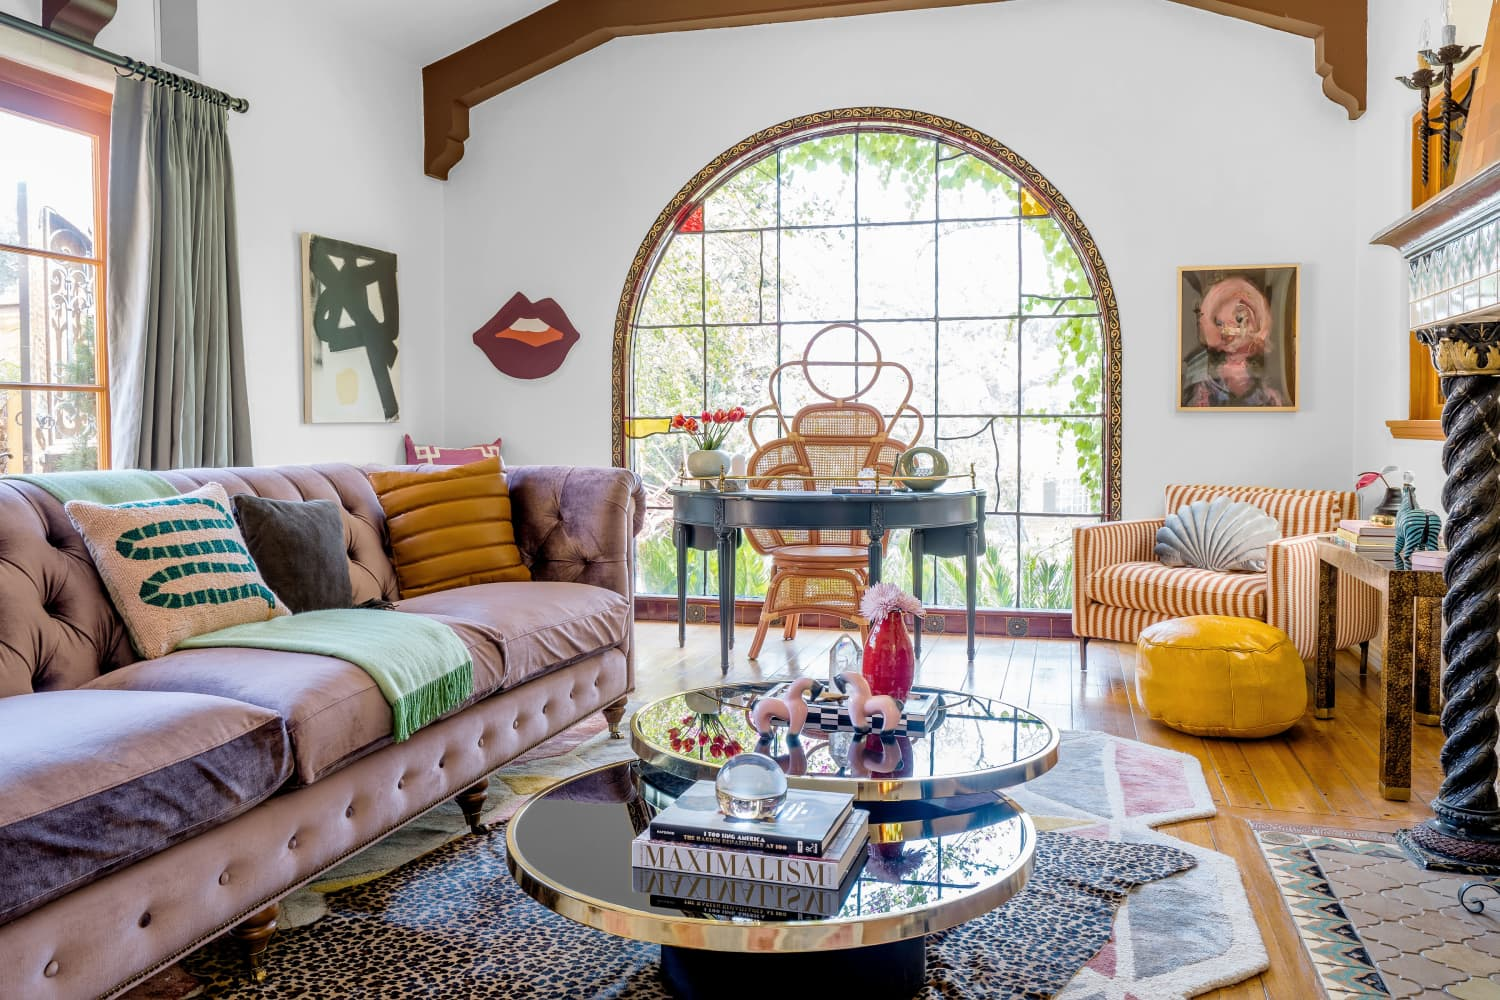 Comedian Nicole Byer's California Home Is a Marvelous Maximalist Mashup